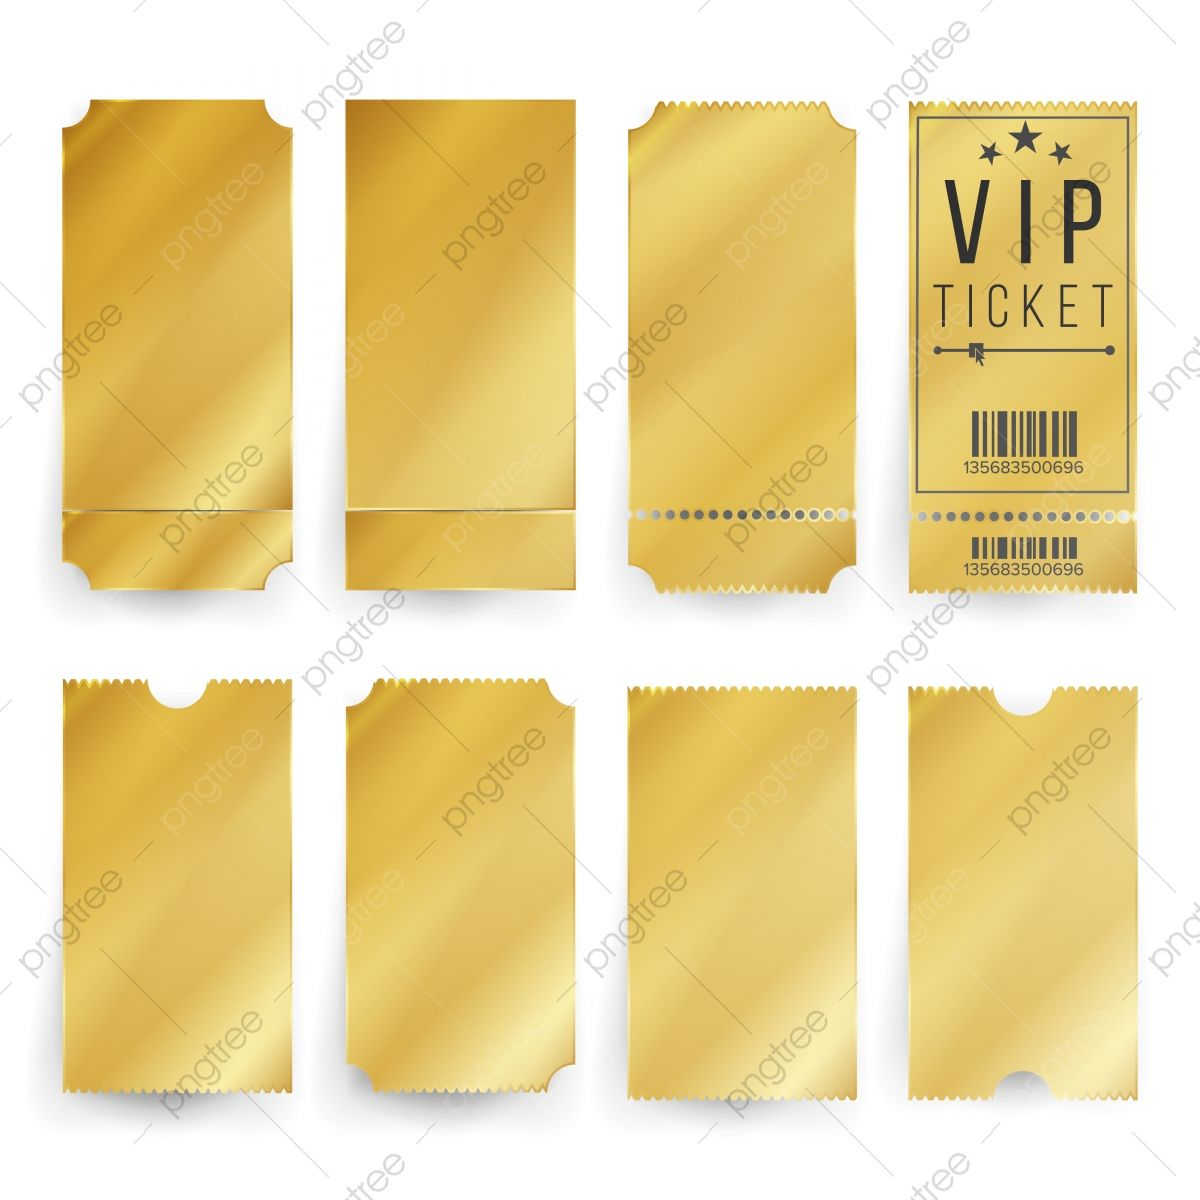 Vip Ticket Template Vector Empty Golden Tickets And Coupons Blank Isolated Illustration Ticket Golden Gold Png And Vector With Transparent Background For Fre Ticket Template Ticket Design Vip Tickets